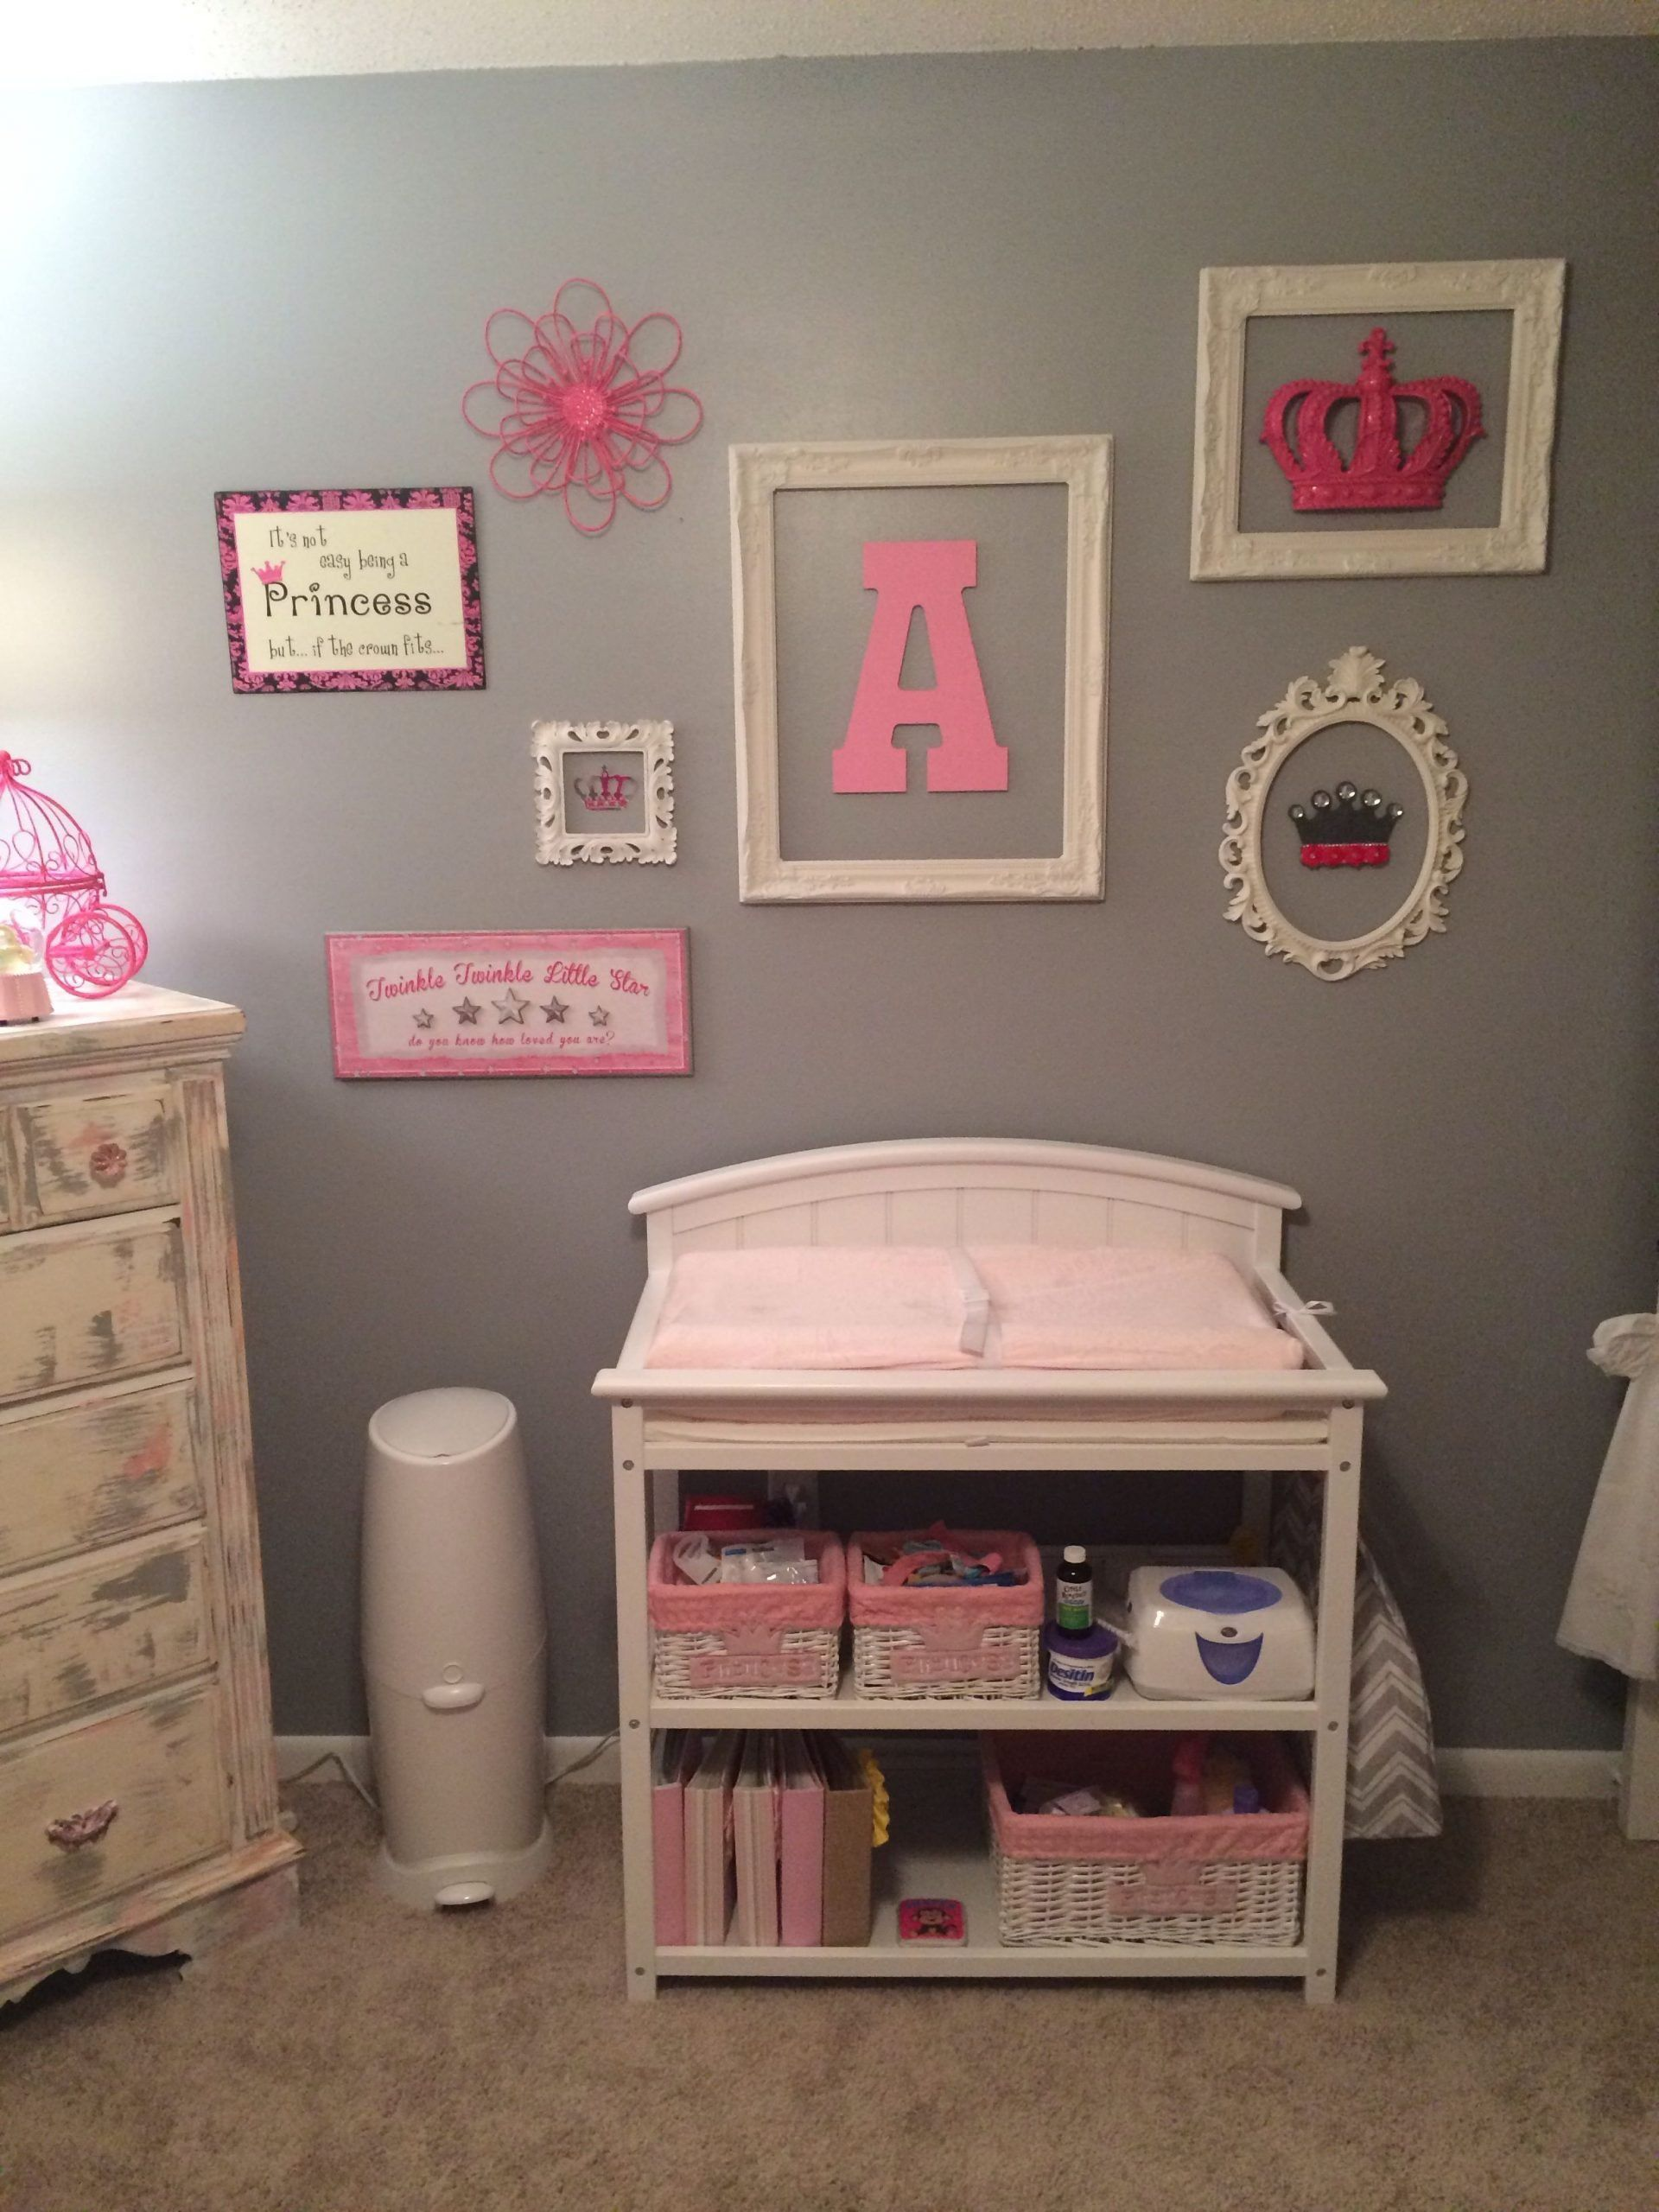 Baby Room Wall Decor Ideas Inexpensive And Easy To Do Diy Wall Decor Baby Room Wall Baby Girl Nursery Diy Baby Room Decor